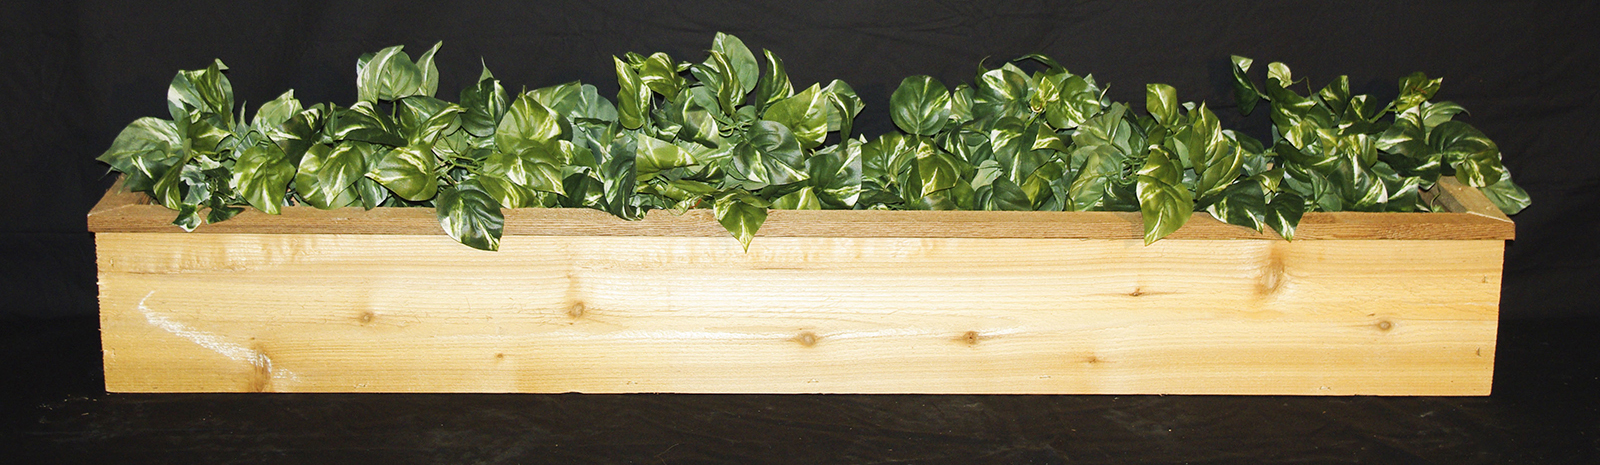 "Trim Top Planters also Available in 60"" and 72"""